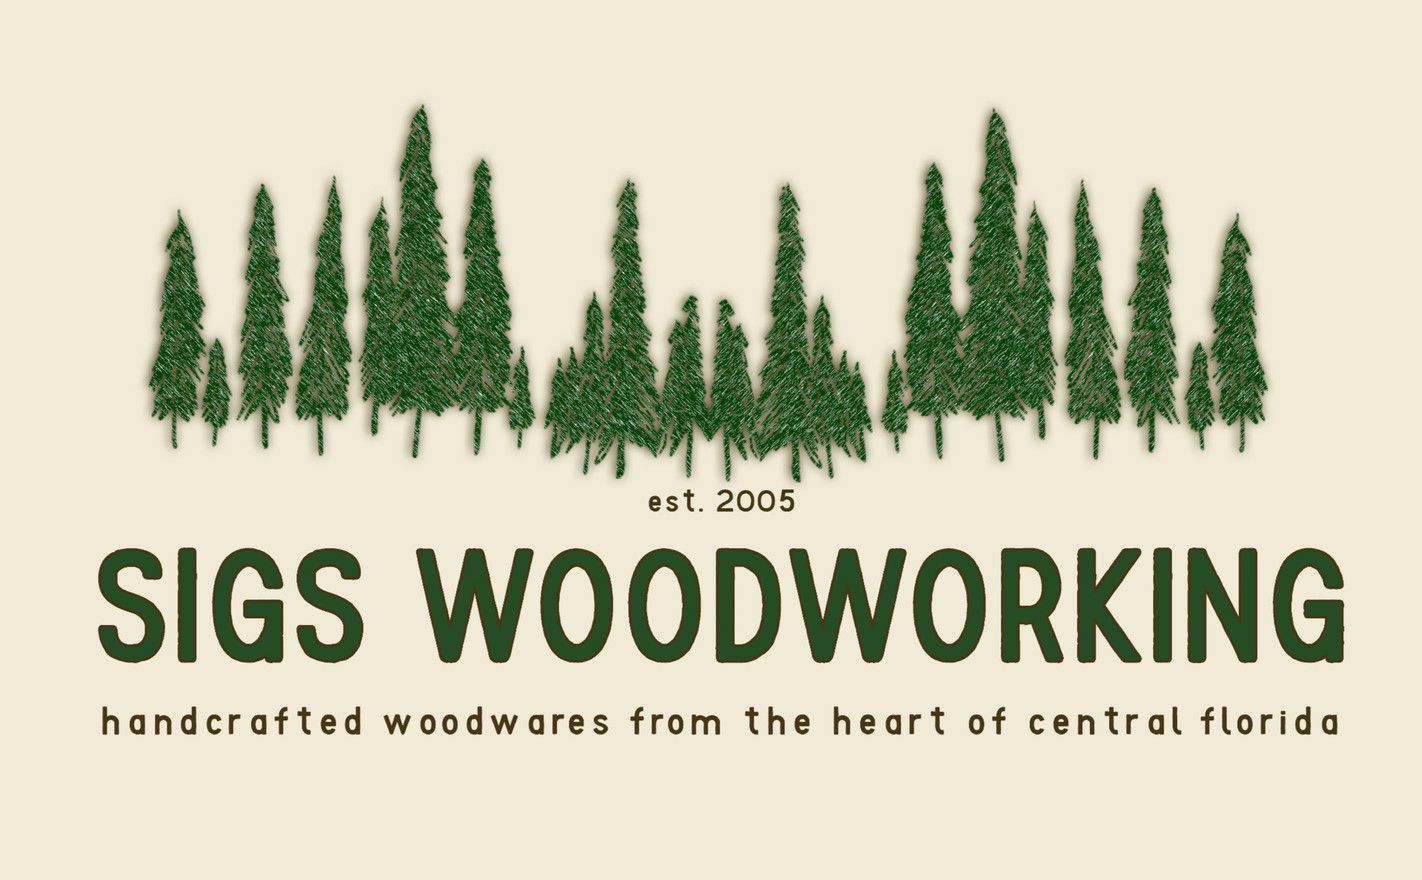 Sigs Woodworking - New Business Branding